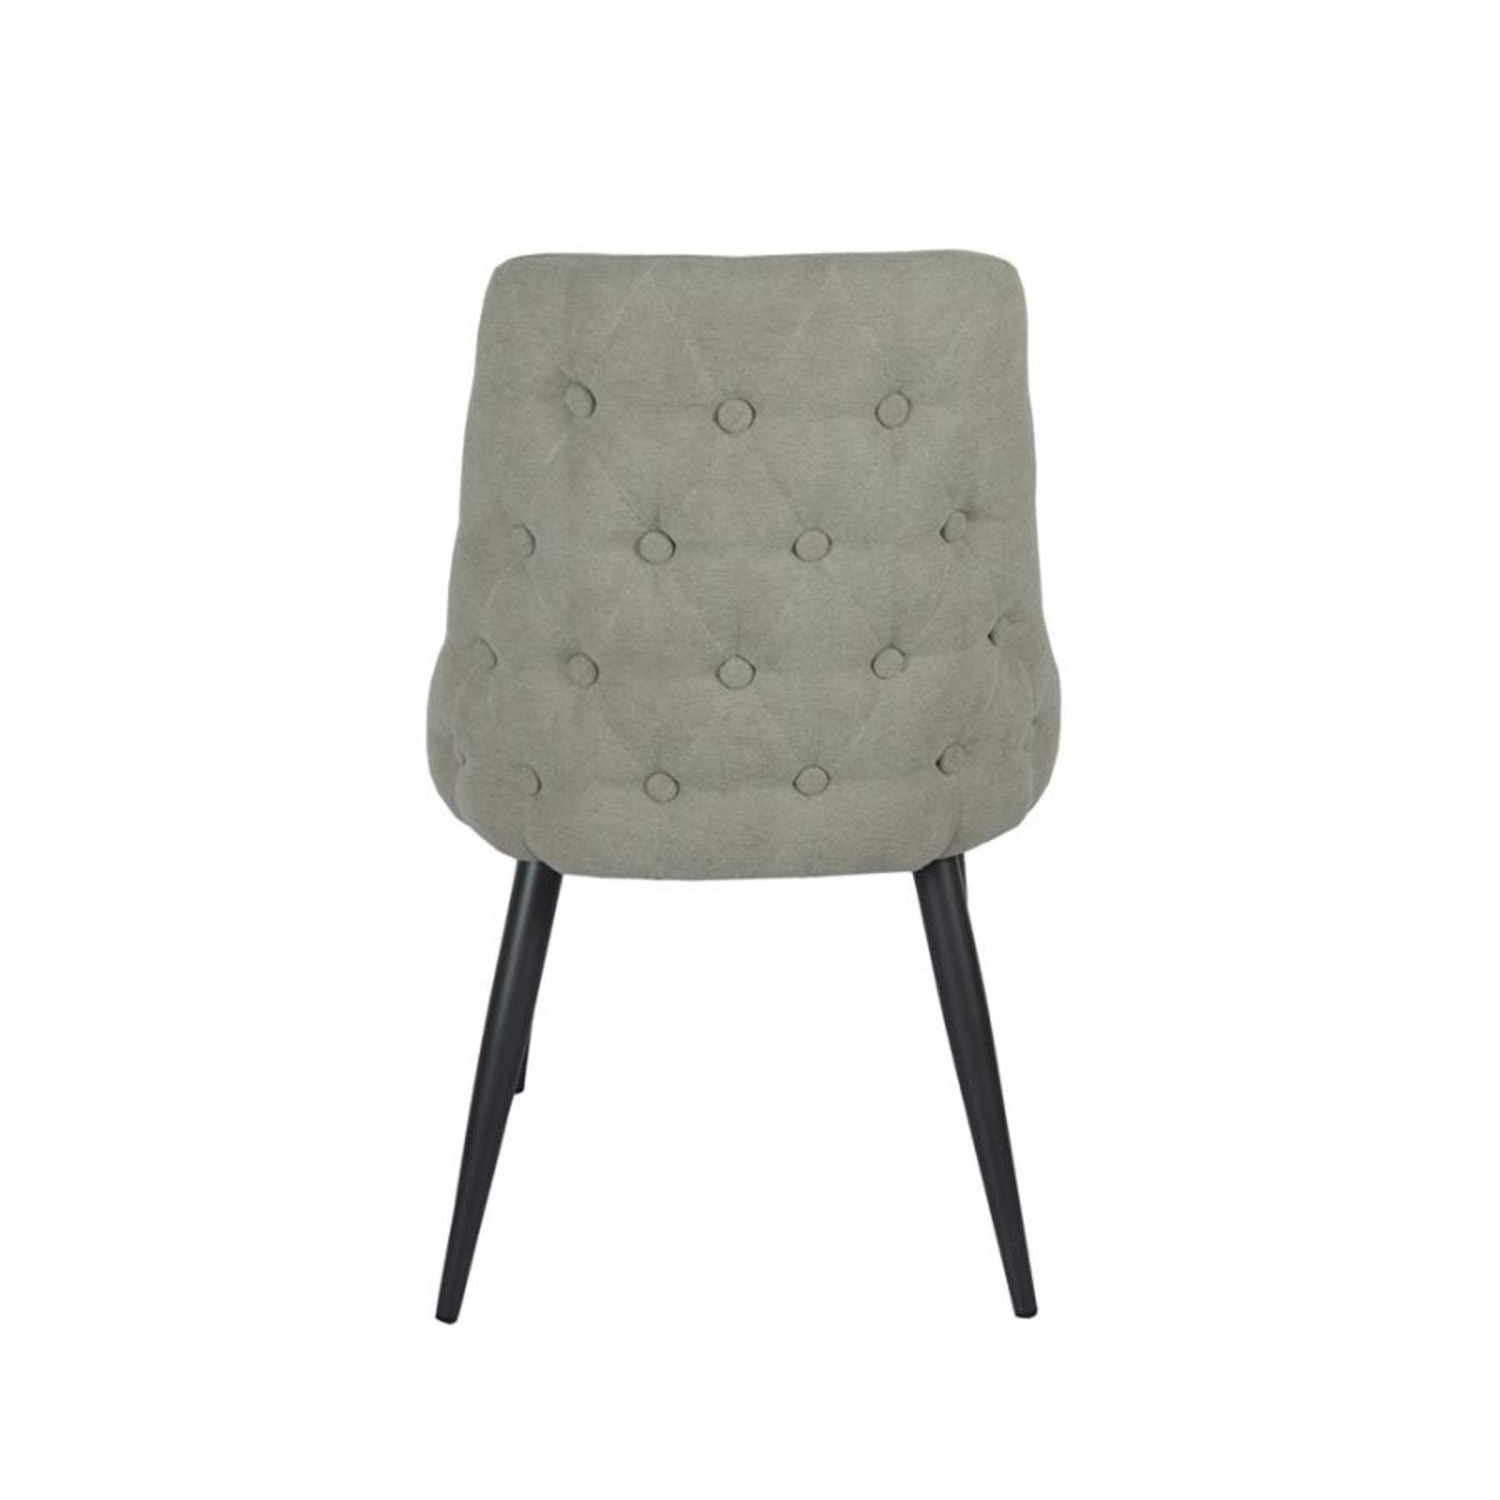 Dining Chair In Off White Microfiber W/Curved Back - image-3